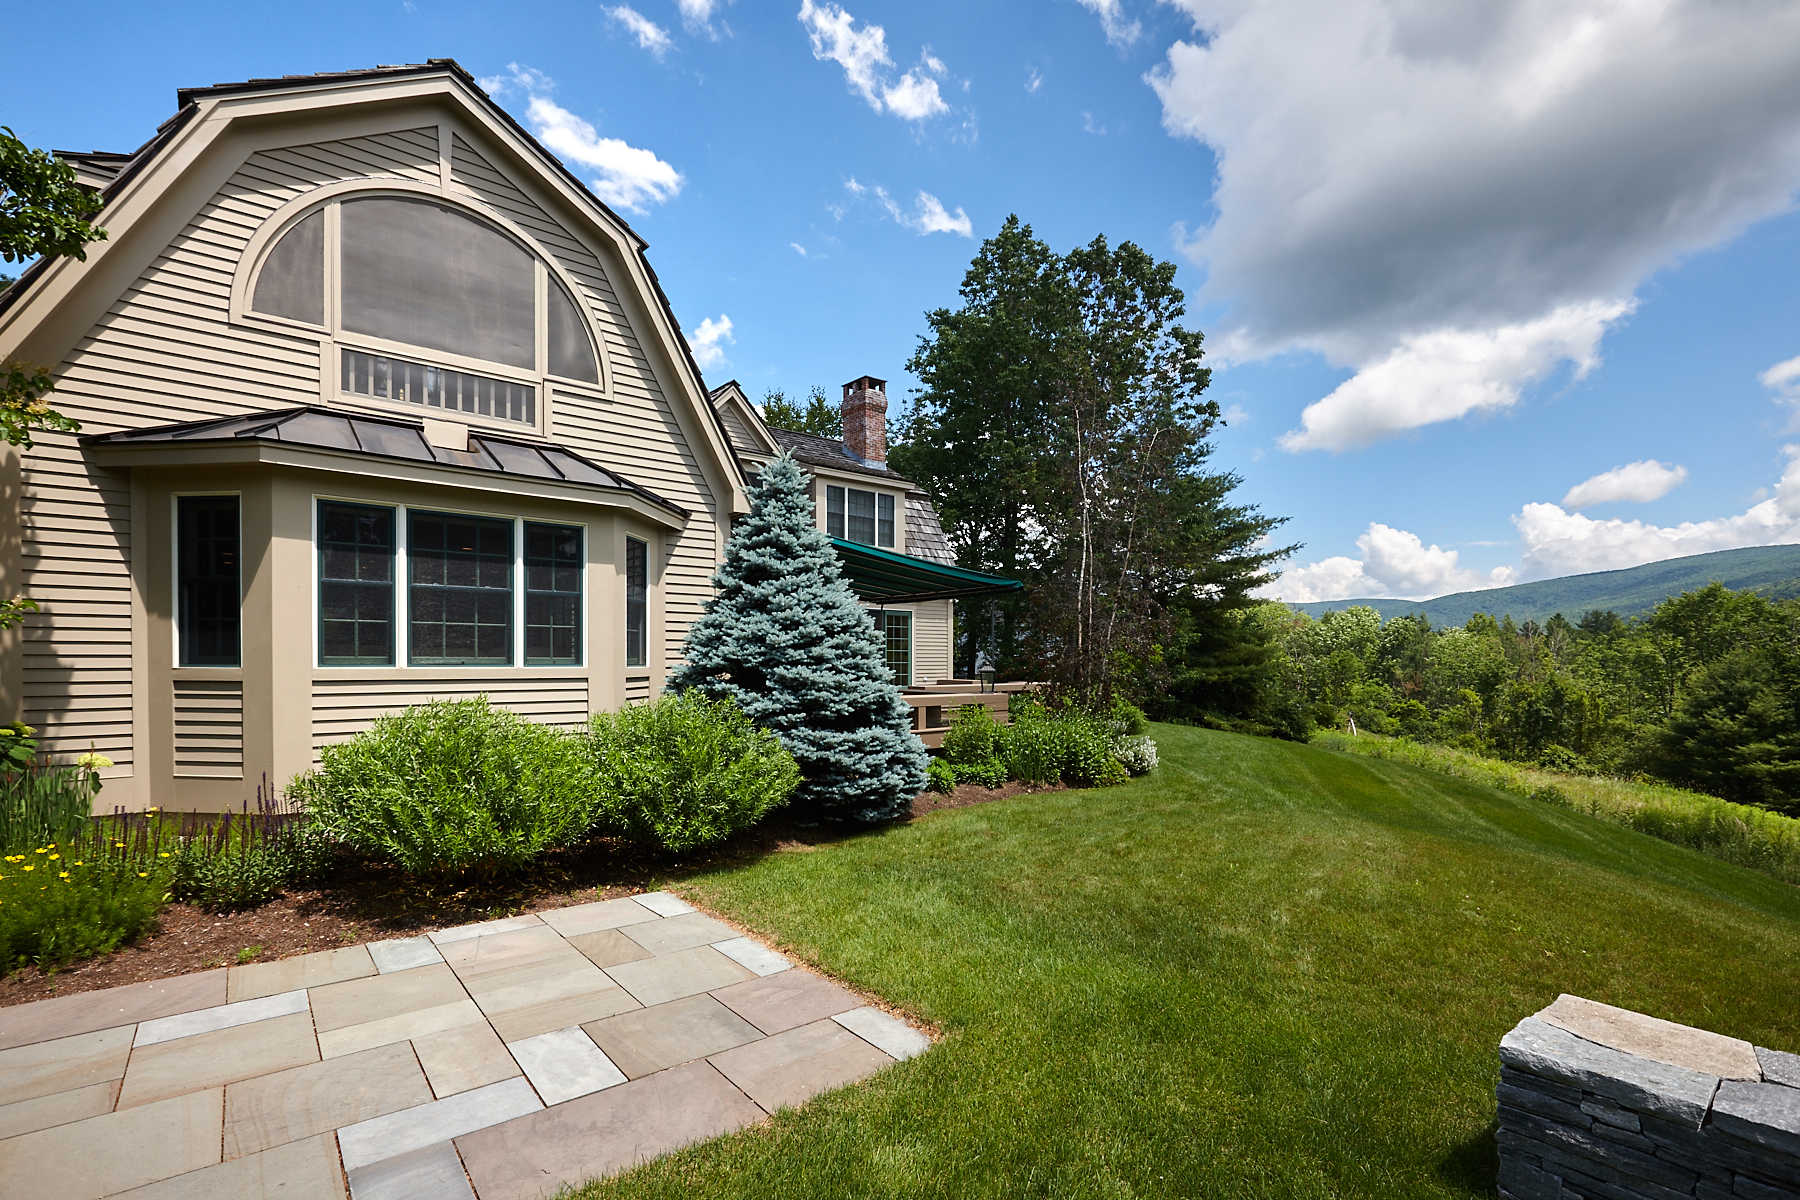 Moradia para Venda às Beautifully Appointed Ormsby Hill Home 249 Edward Isham Rd Manchester, Vermont, 05255 Estados Unidos